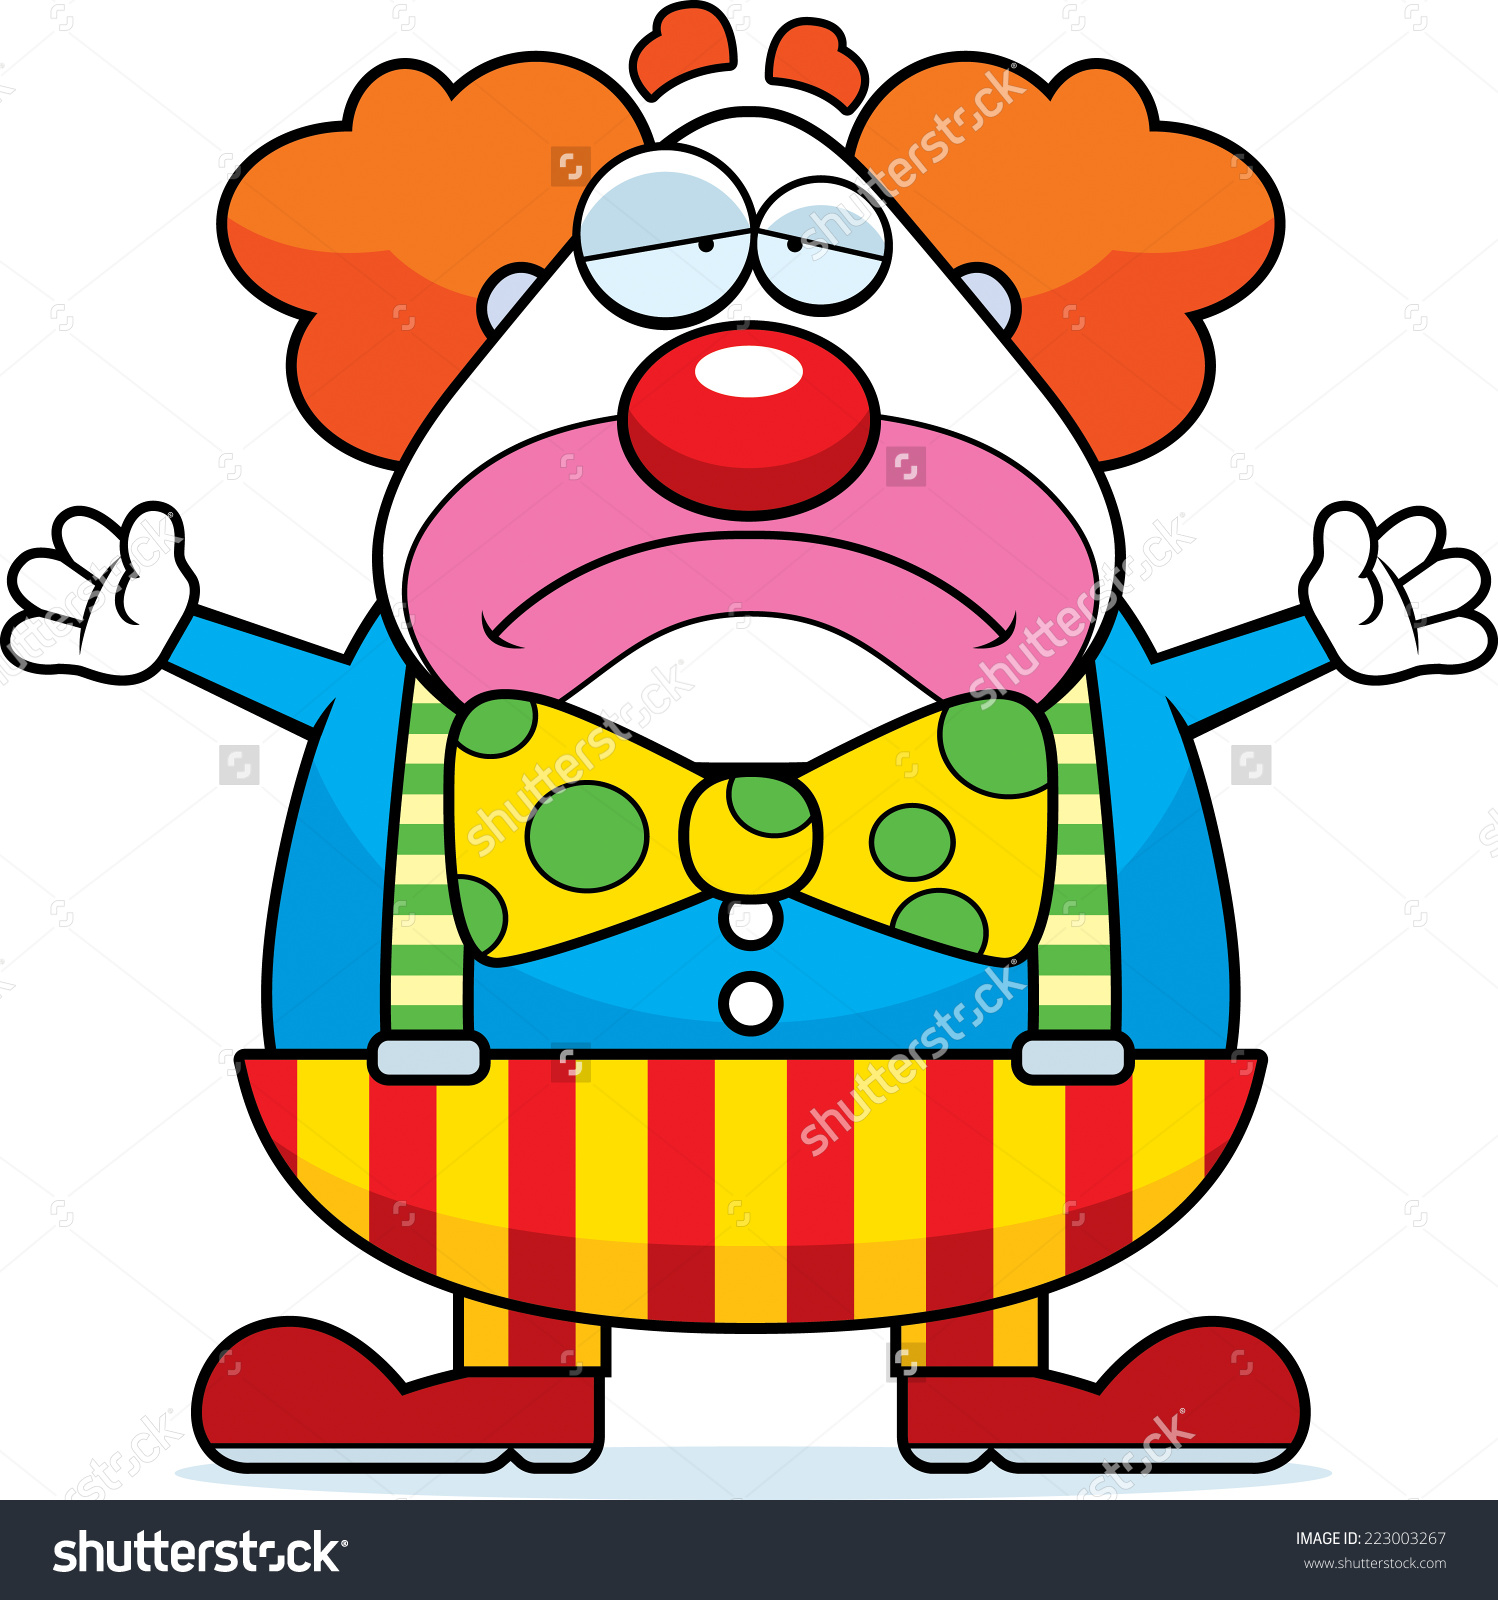 1498x1600 Crying Clown Clipart, Explore Pictures